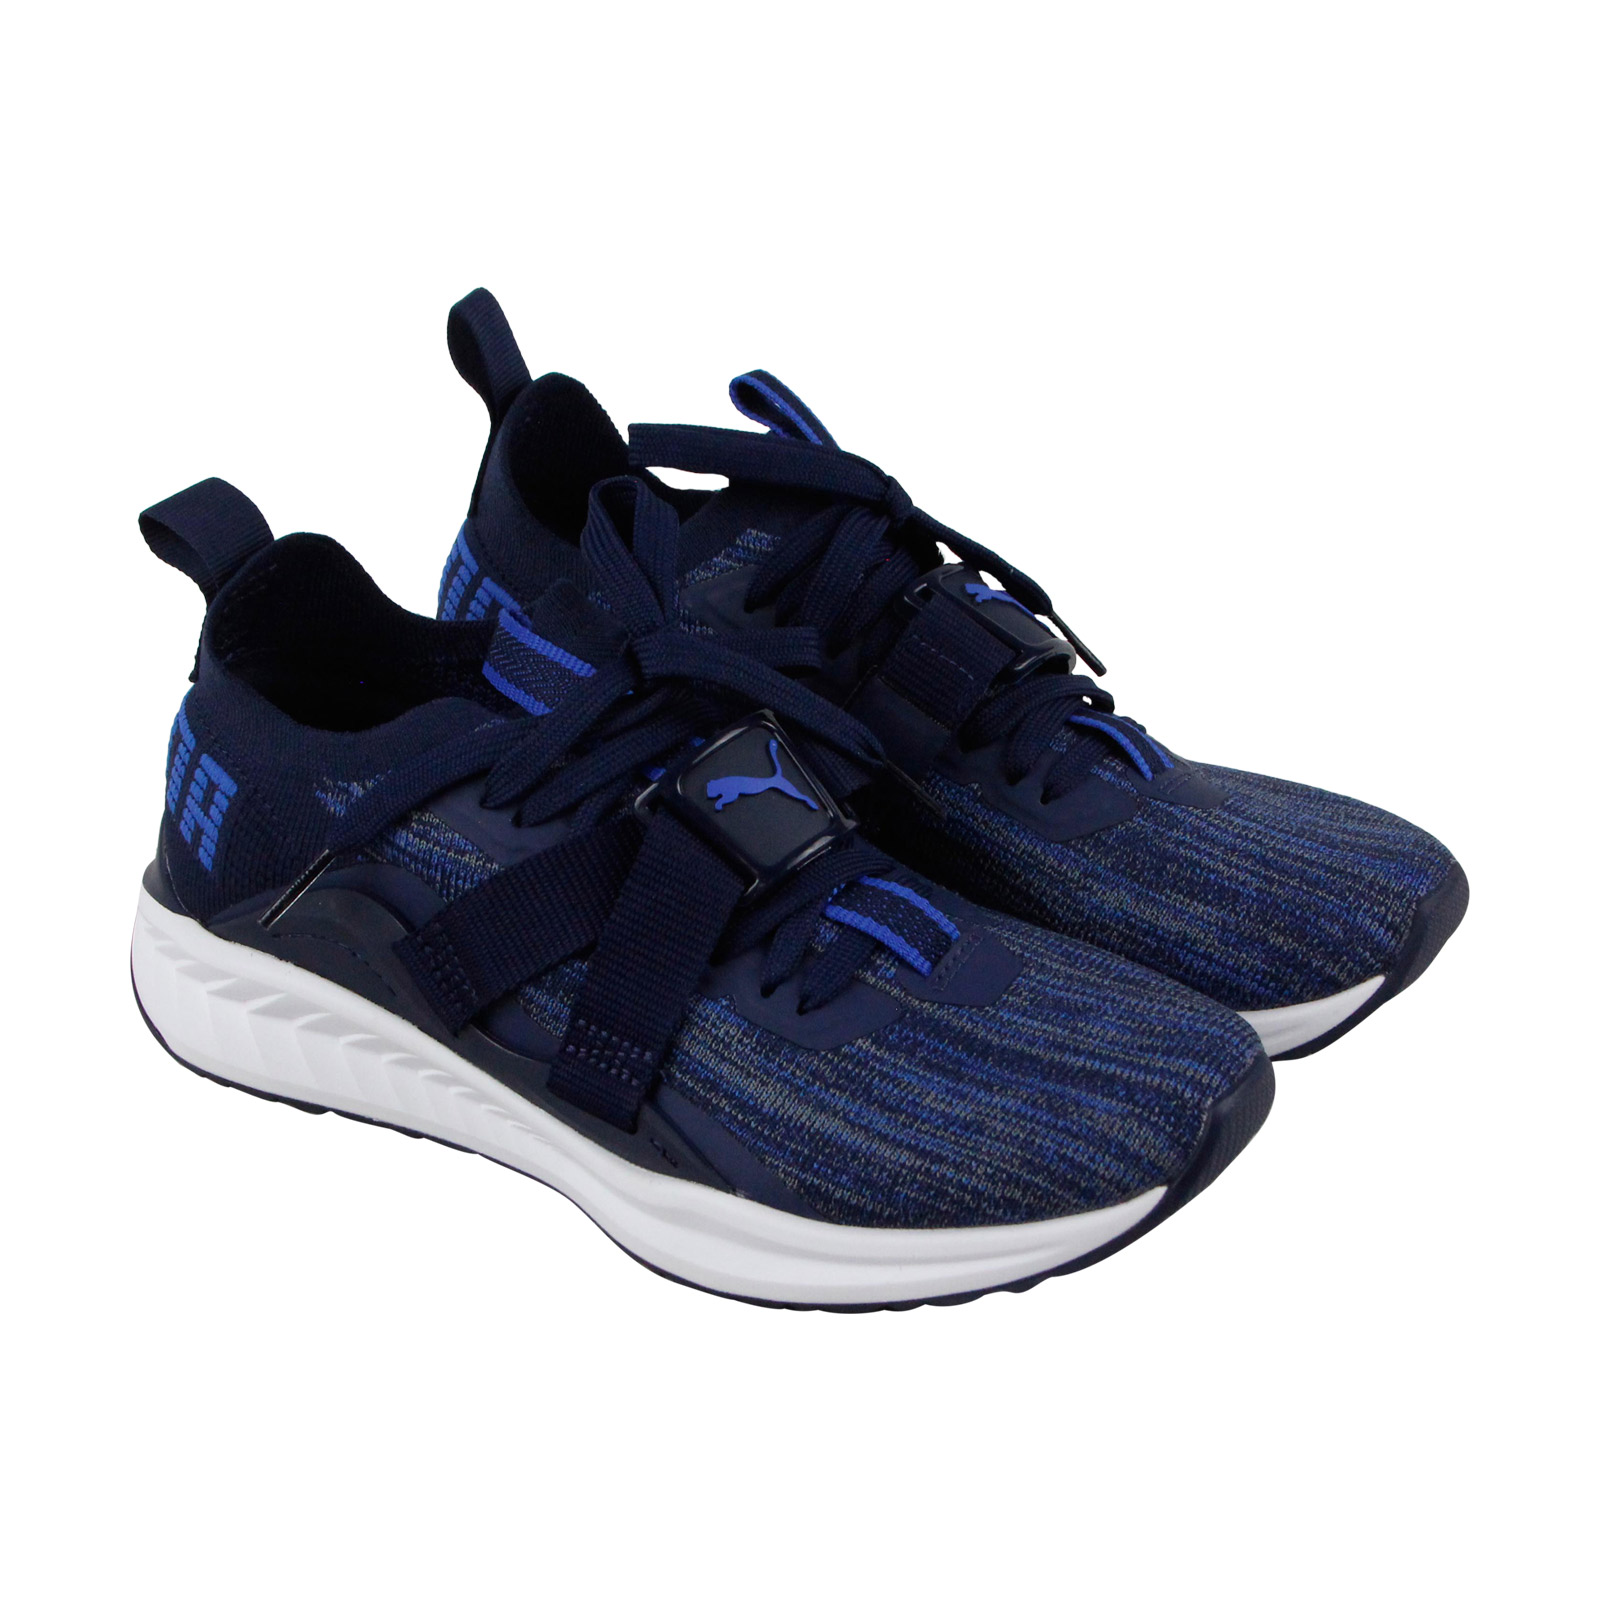 Puma Ignite Evoknit Lo 2 Mens Blue Textile Bthletic Lace Up Running Shoes